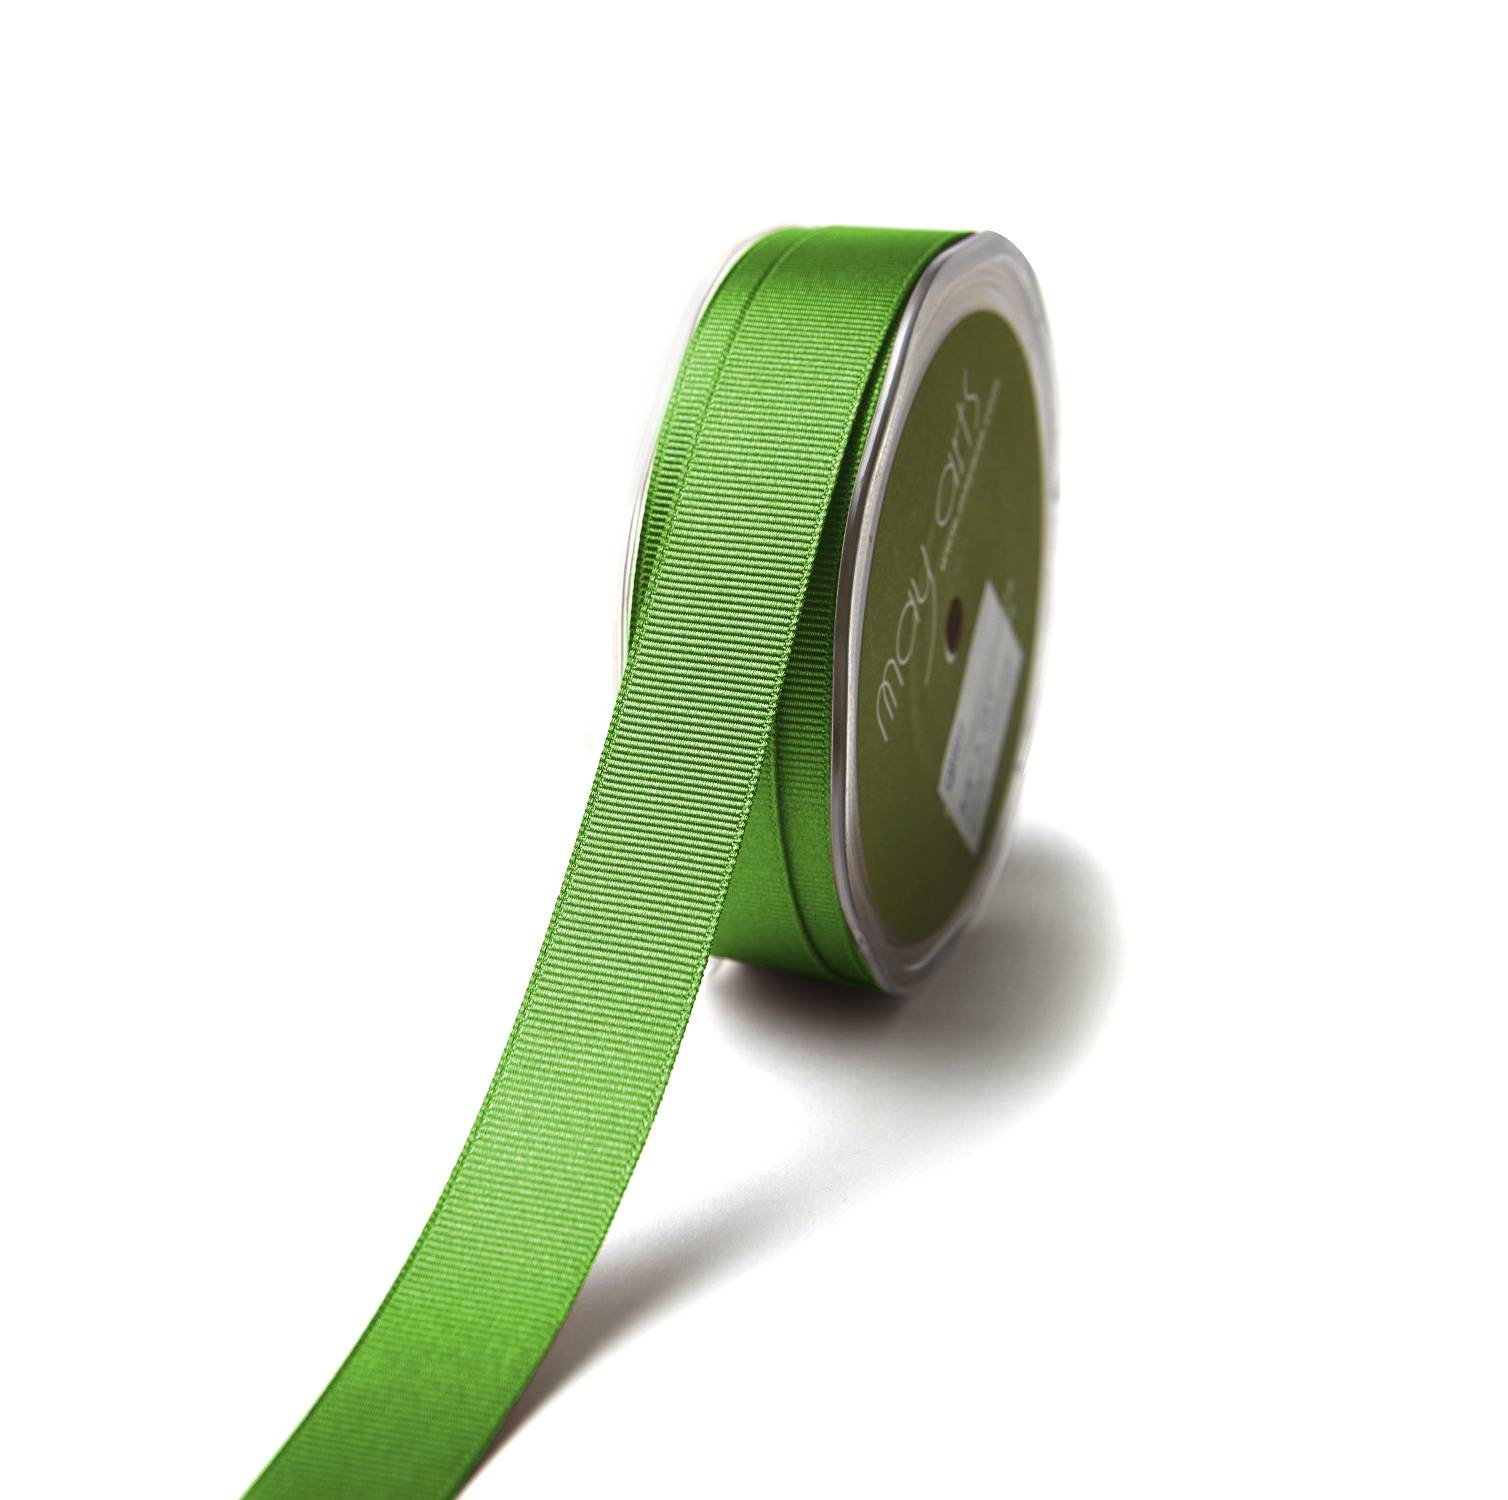 Green grosgrain polyester printed satin ribbon Featured Image